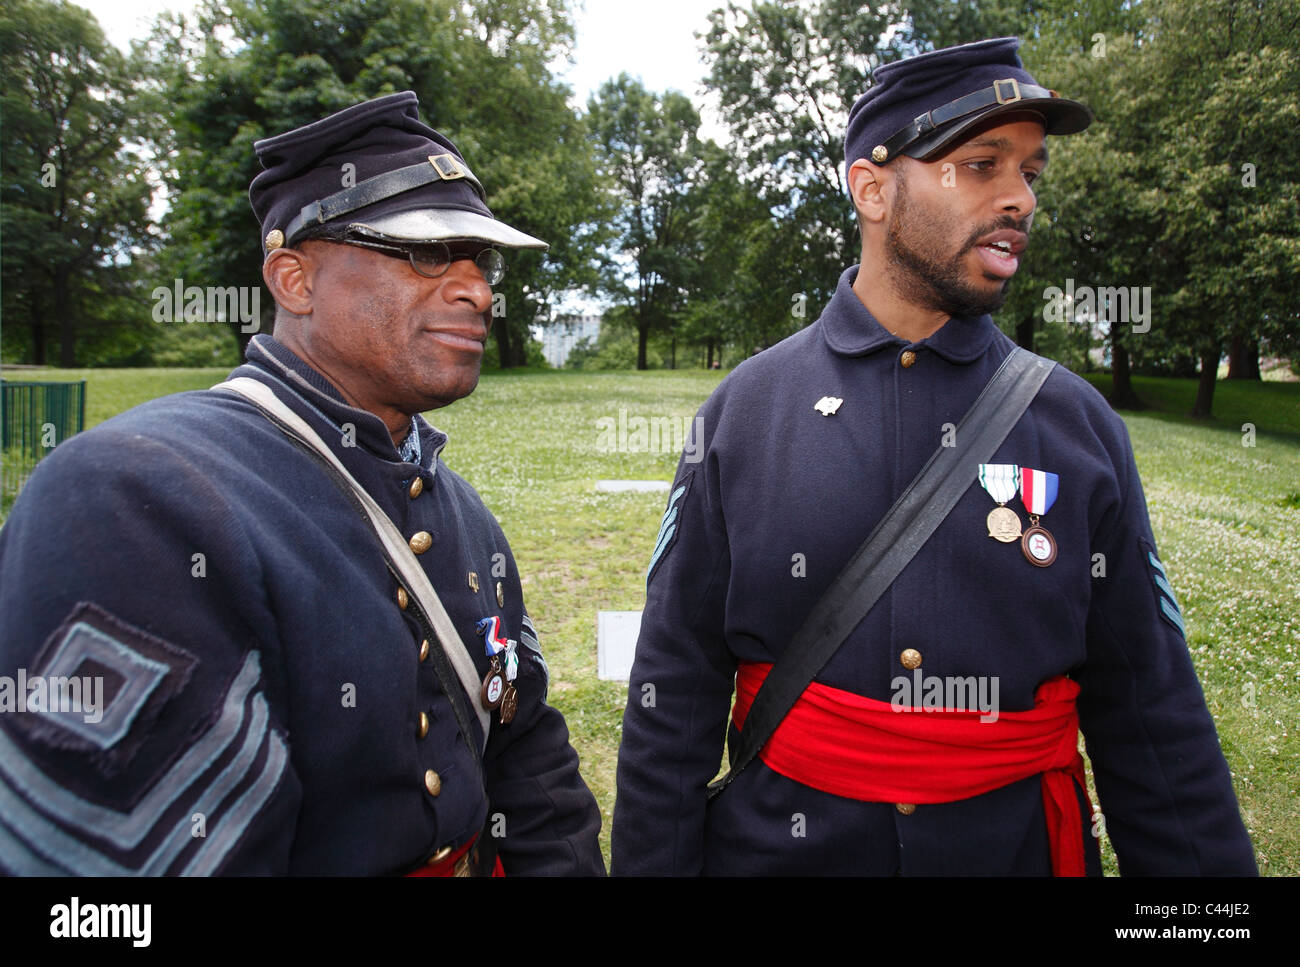 Reenactors in the uniform of the 54th Massachusetts Volunteer Infantry Regiment, an all black unit in the American - Stock Image